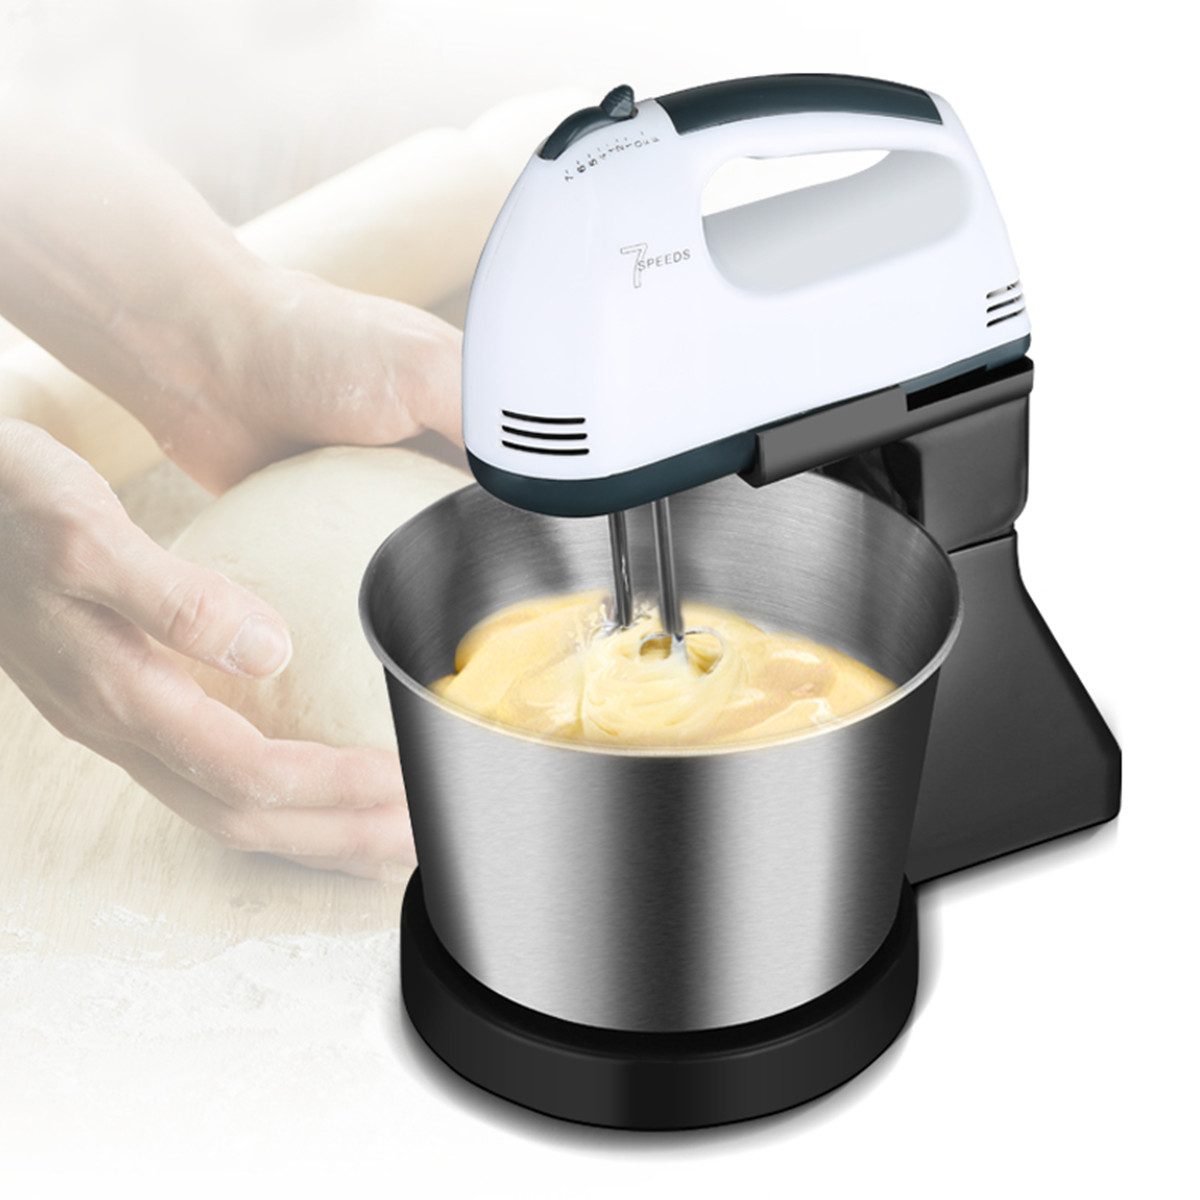 Multifunction Table Electric Food Mixer Table Handheld Egg Beater Blender For Baking With 7 Speed Automatic Whisk EU Plug jiqi multifunction table electric food mixer table handheld egg beater blender for baking with 7 speed automatic whisk eu usplug